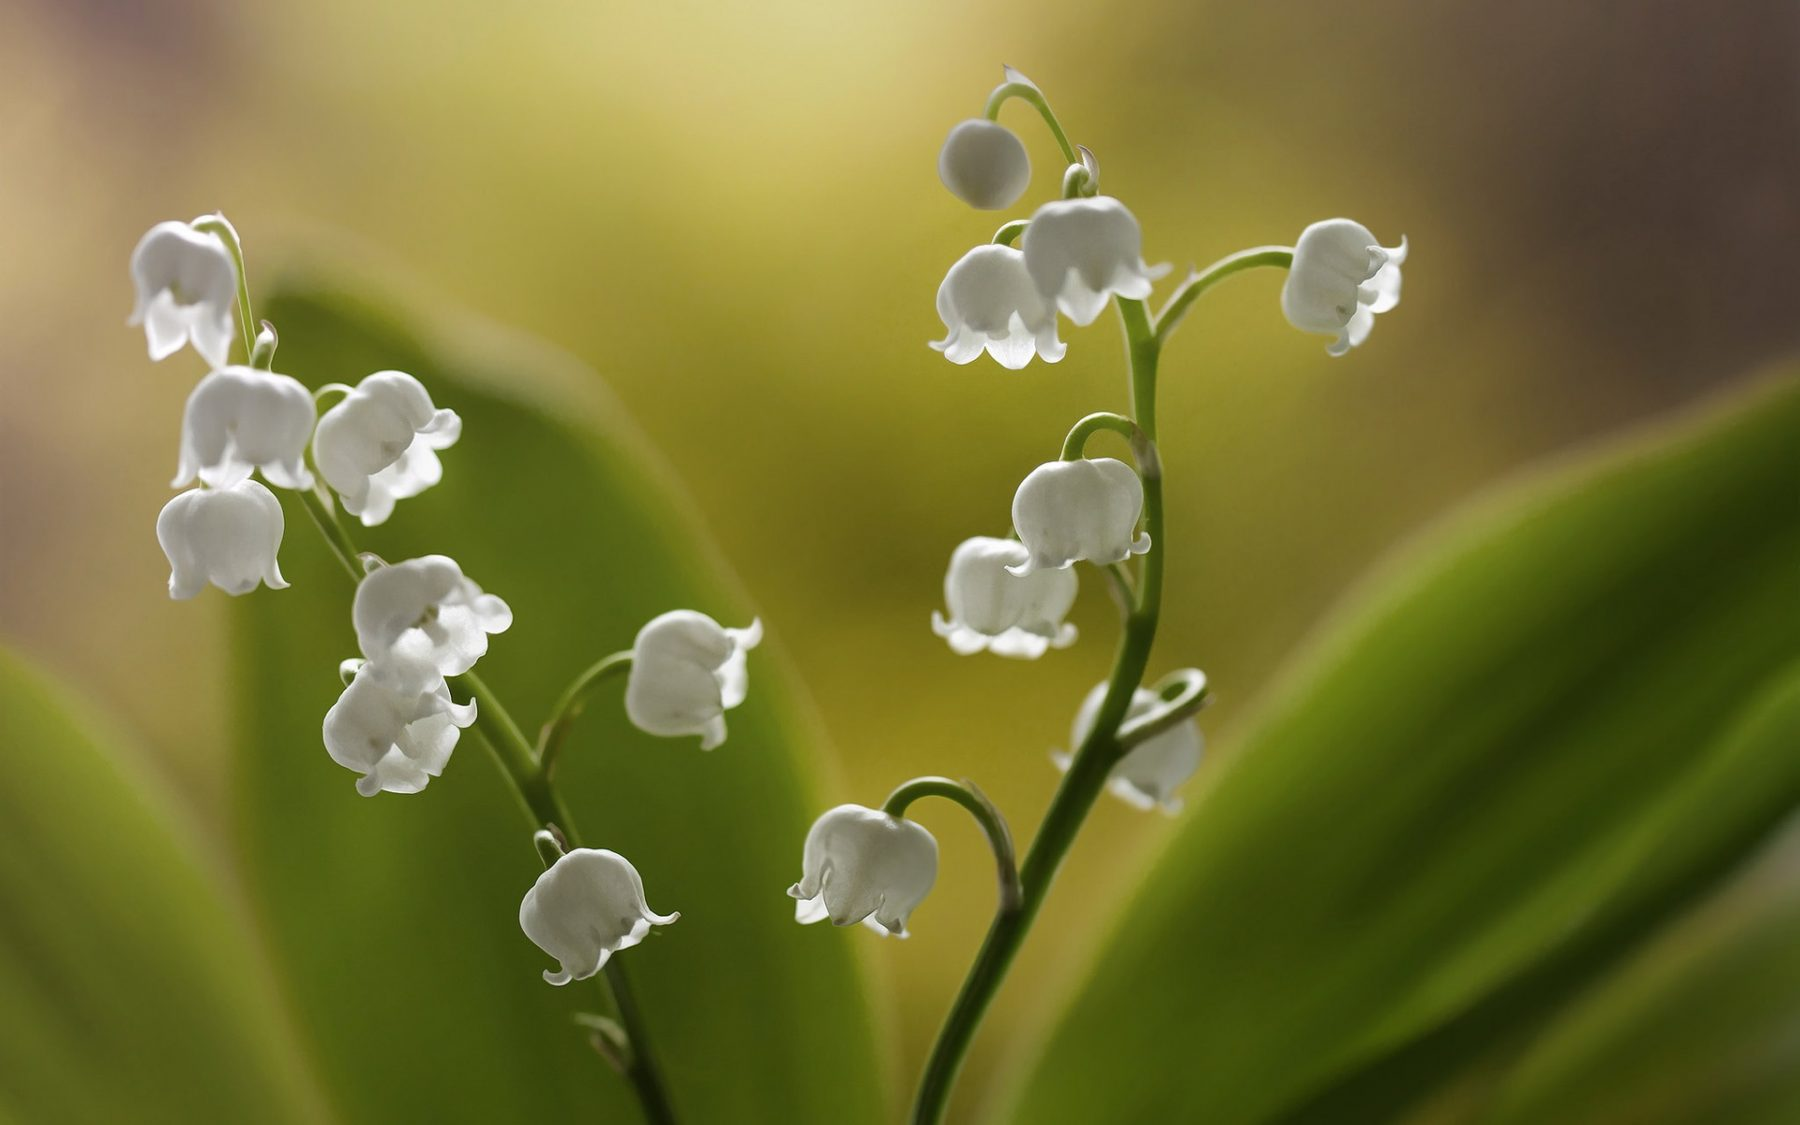 Lilies-of-the-valley-white-little-flowers_1920x1200